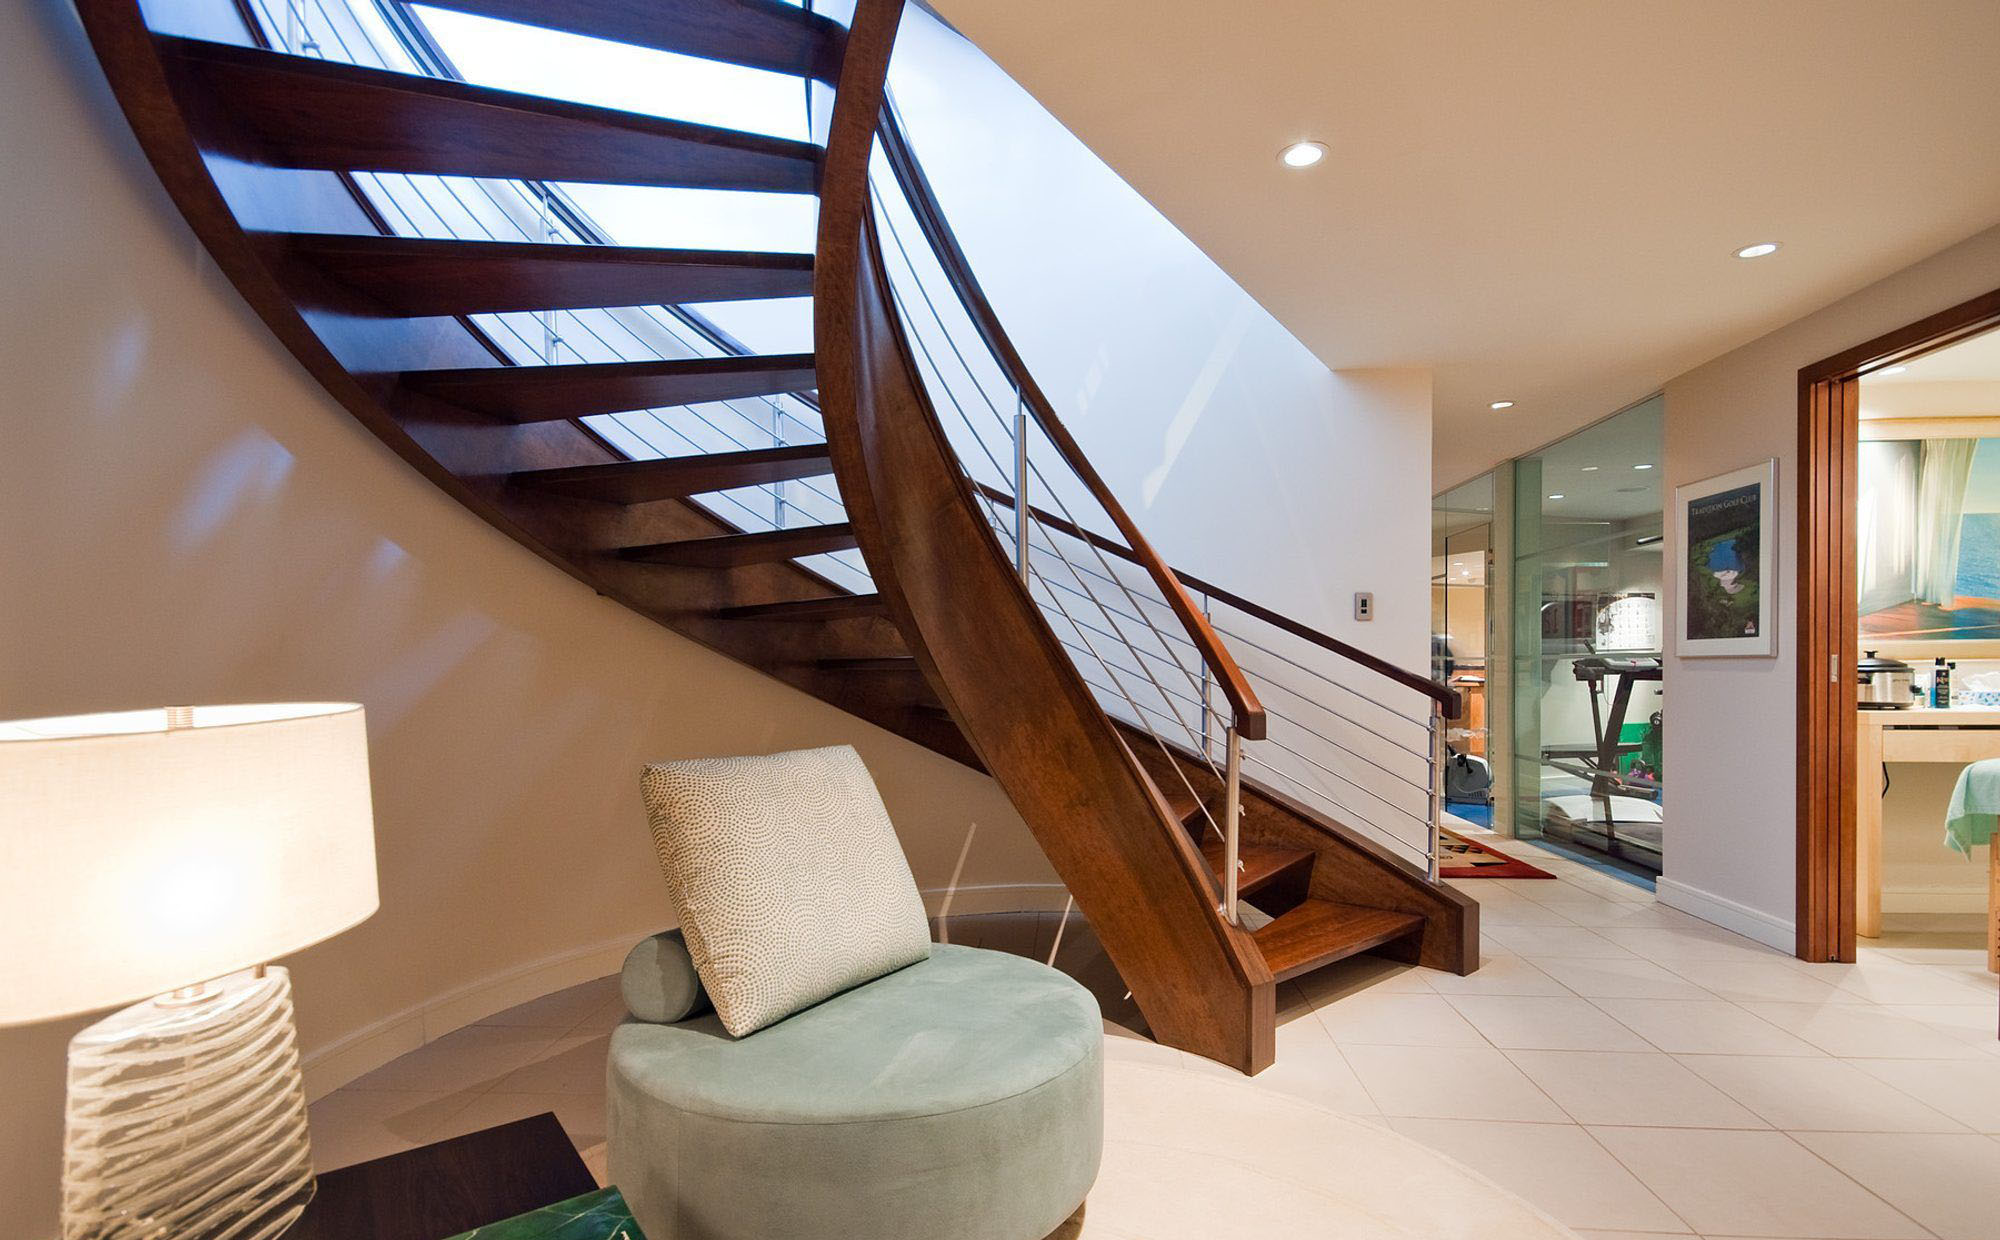 Beautiful modern staircase with a curved design. Open risers with metal horizontal balusters.